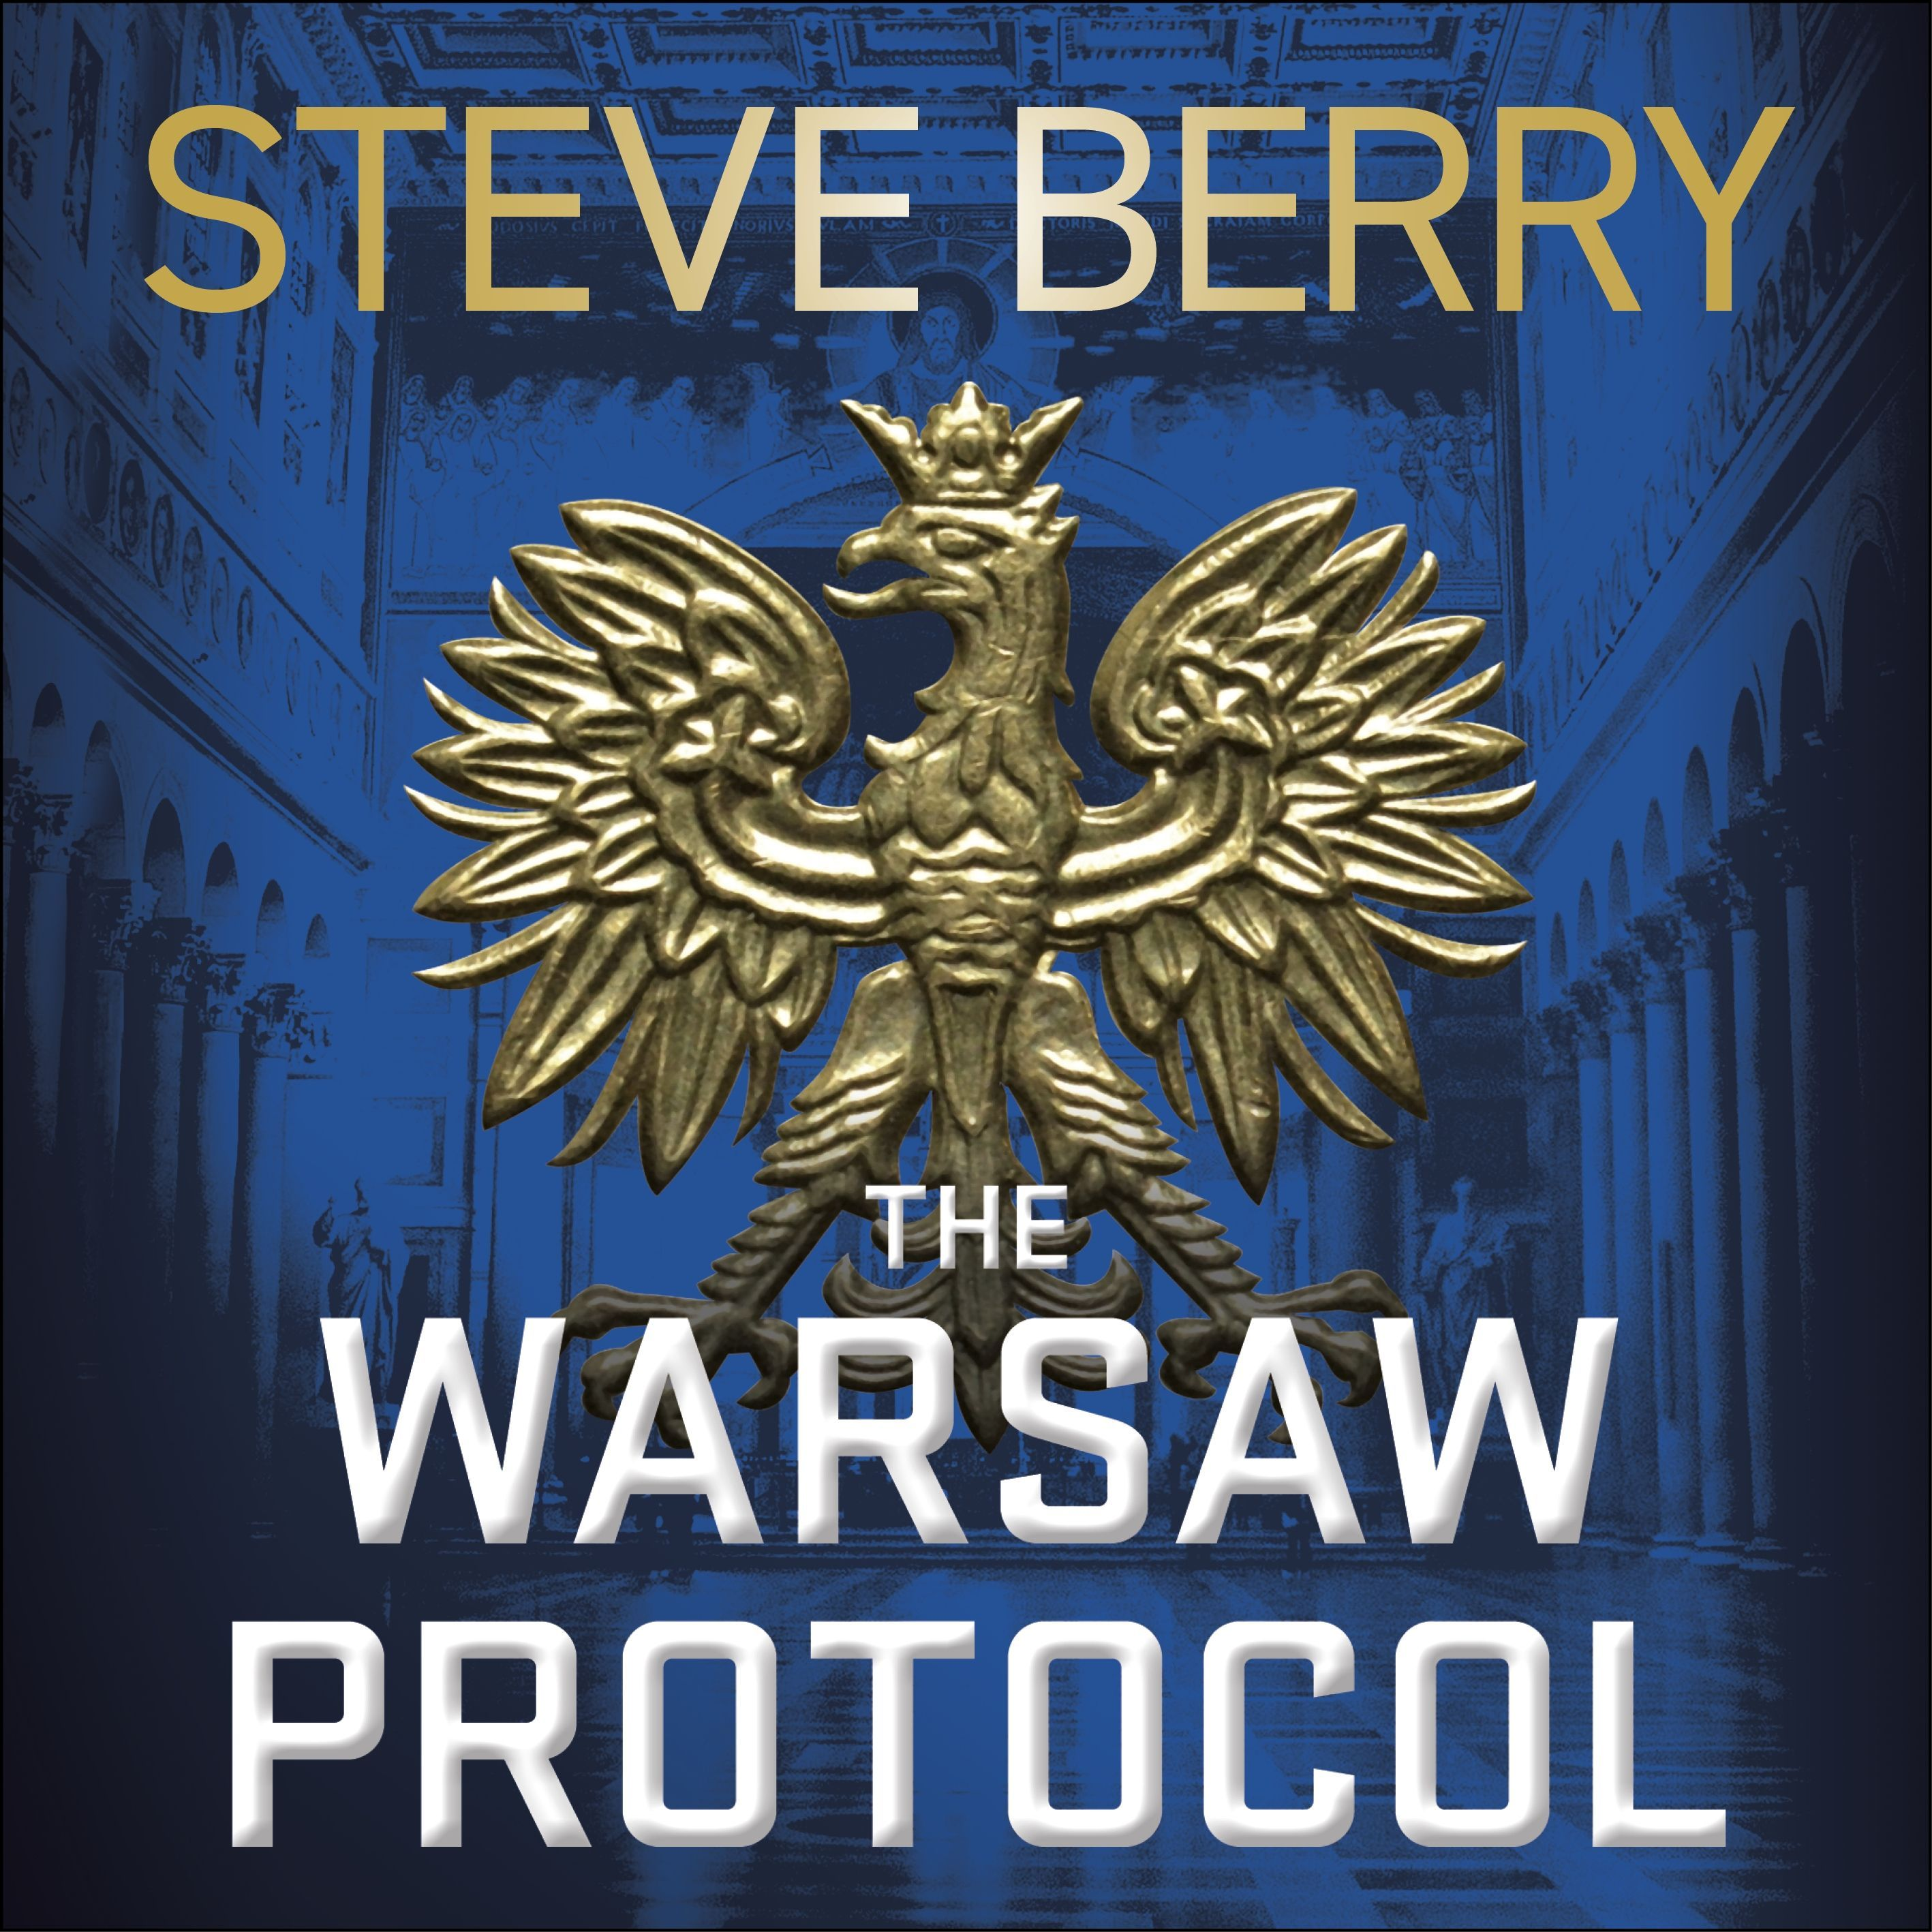 THE WARSAW PROTOCOL by Steve Berry, read by Scott Berry and Steve Brick - Audiobook extract